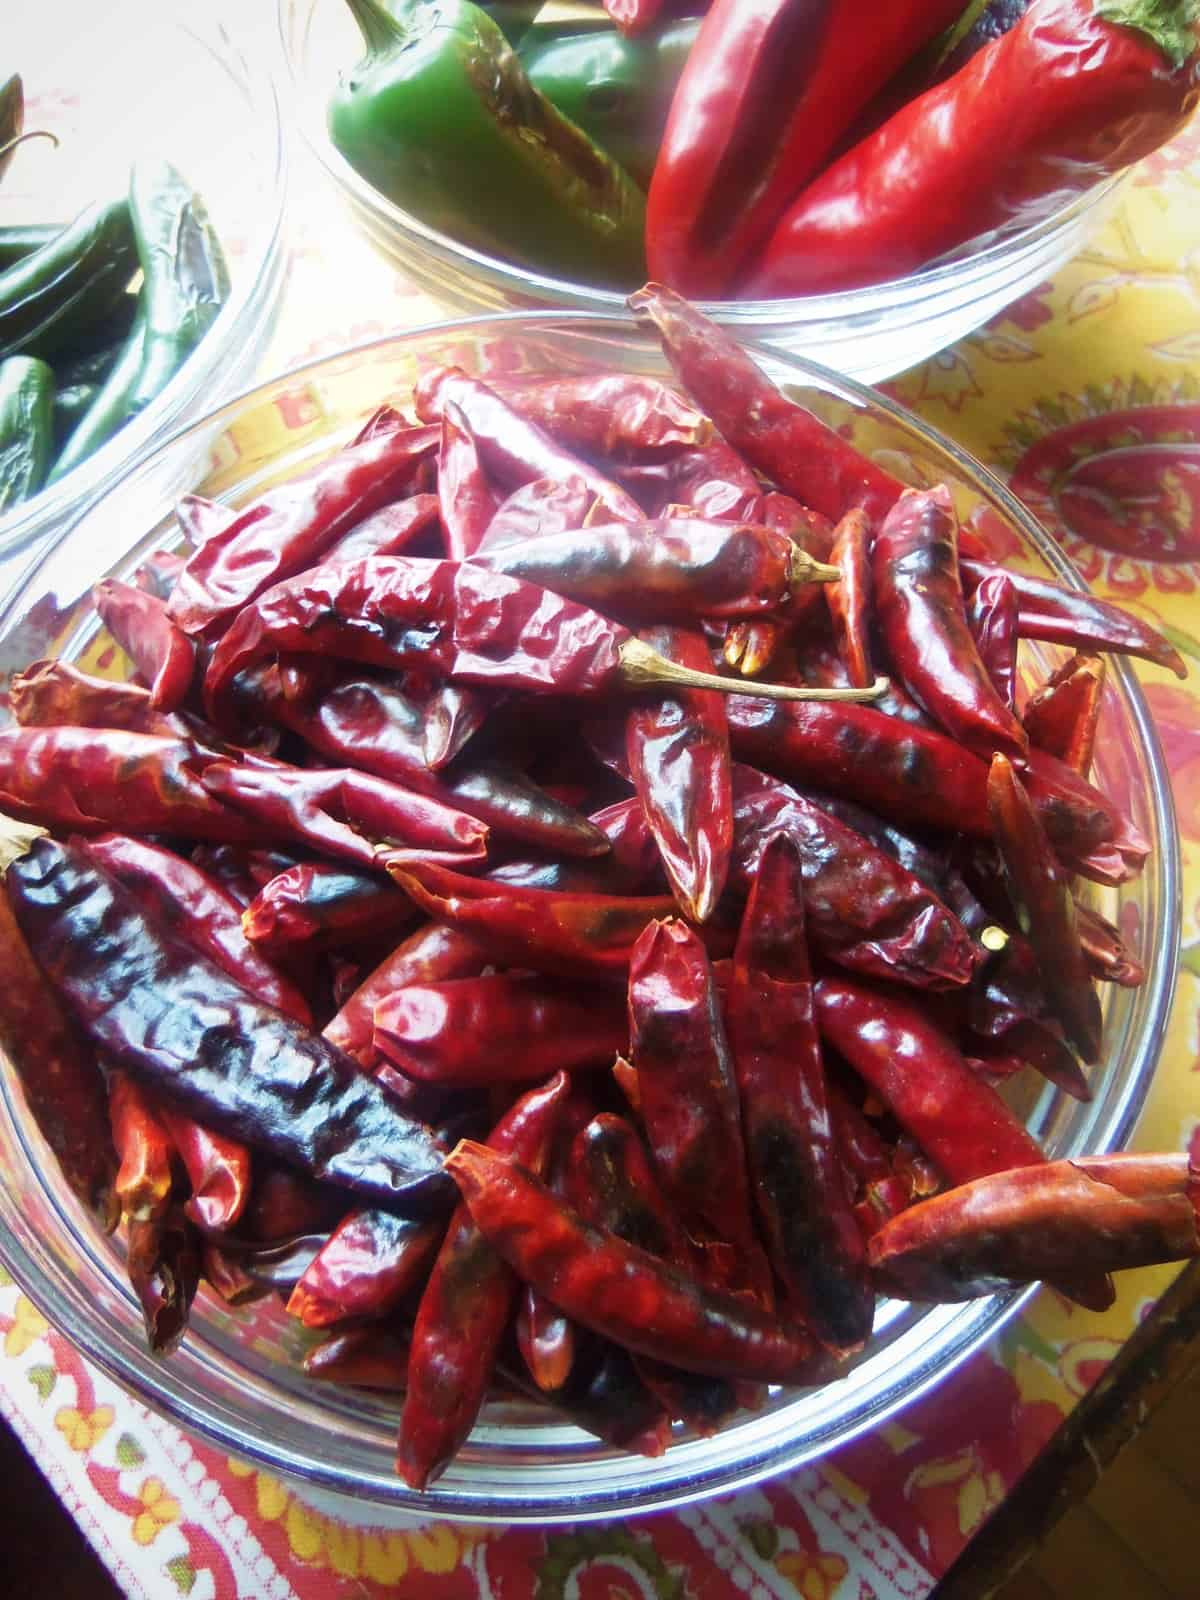 Toasting the chile de arbol adds a nice smoky flavor. They toast quickly. I remove them from the heat as soon as they become aromatic.